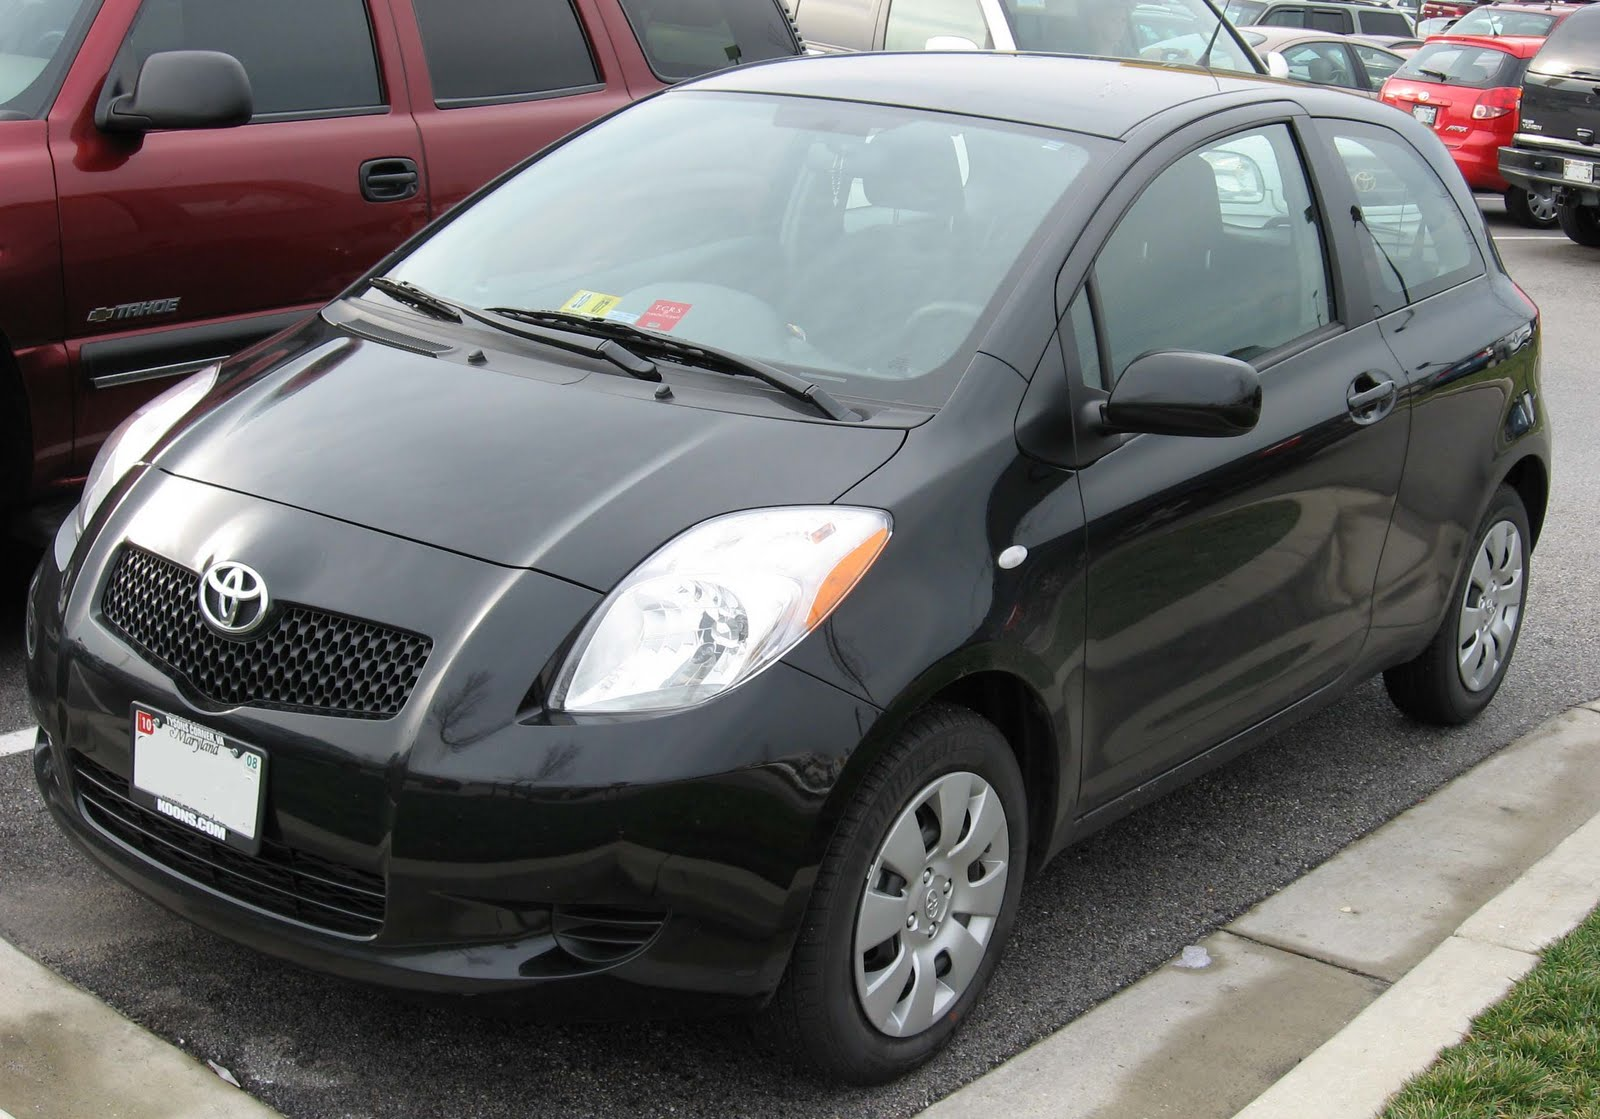 Toyota Yaris or Toyota Vitz is a small hatchback car produced by -4.bp.blogspot.com